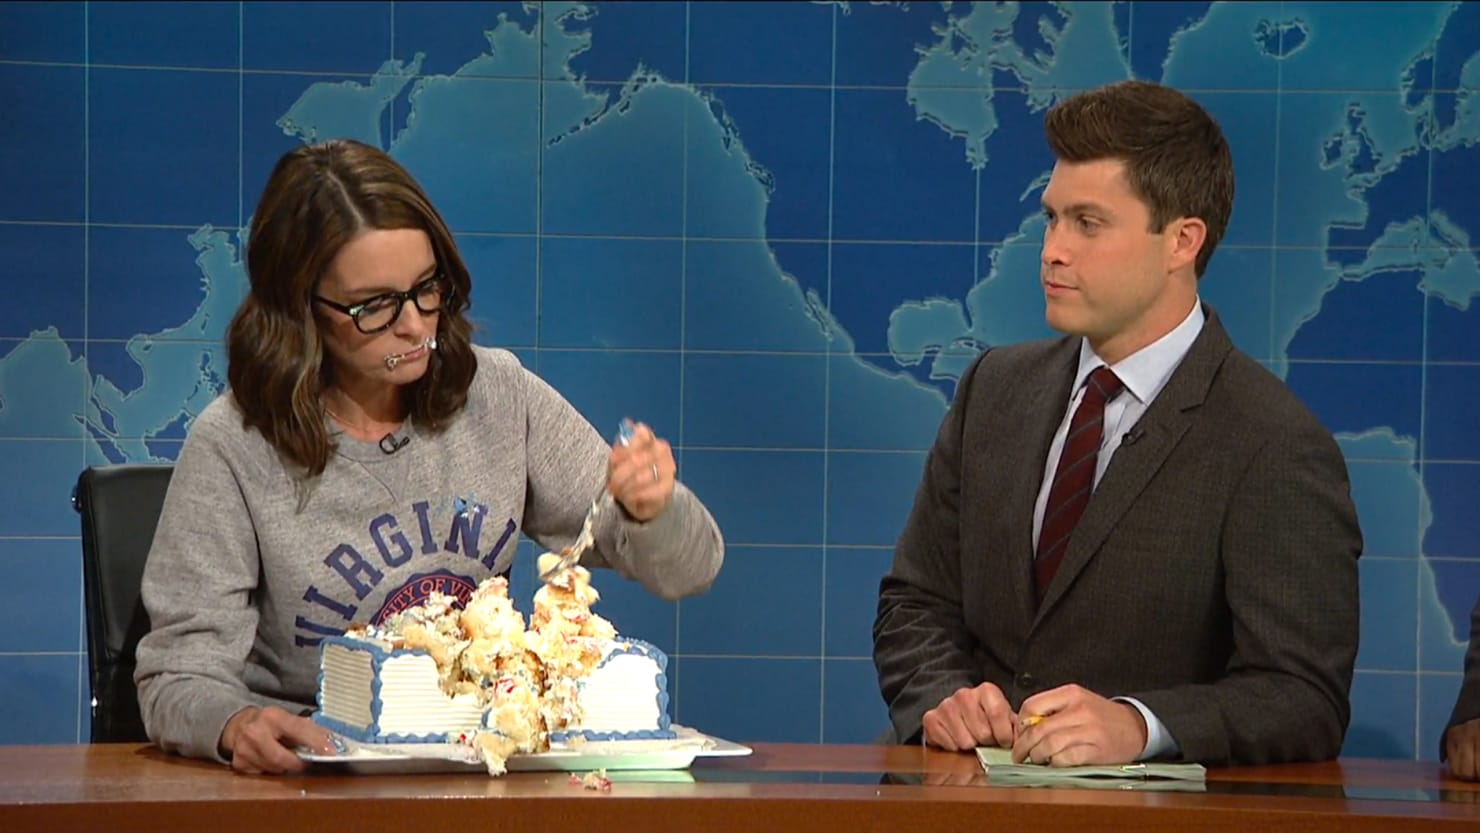 Tina Fey's 'Eat Cake' Strategy After Charlottesville Is Bad Advice